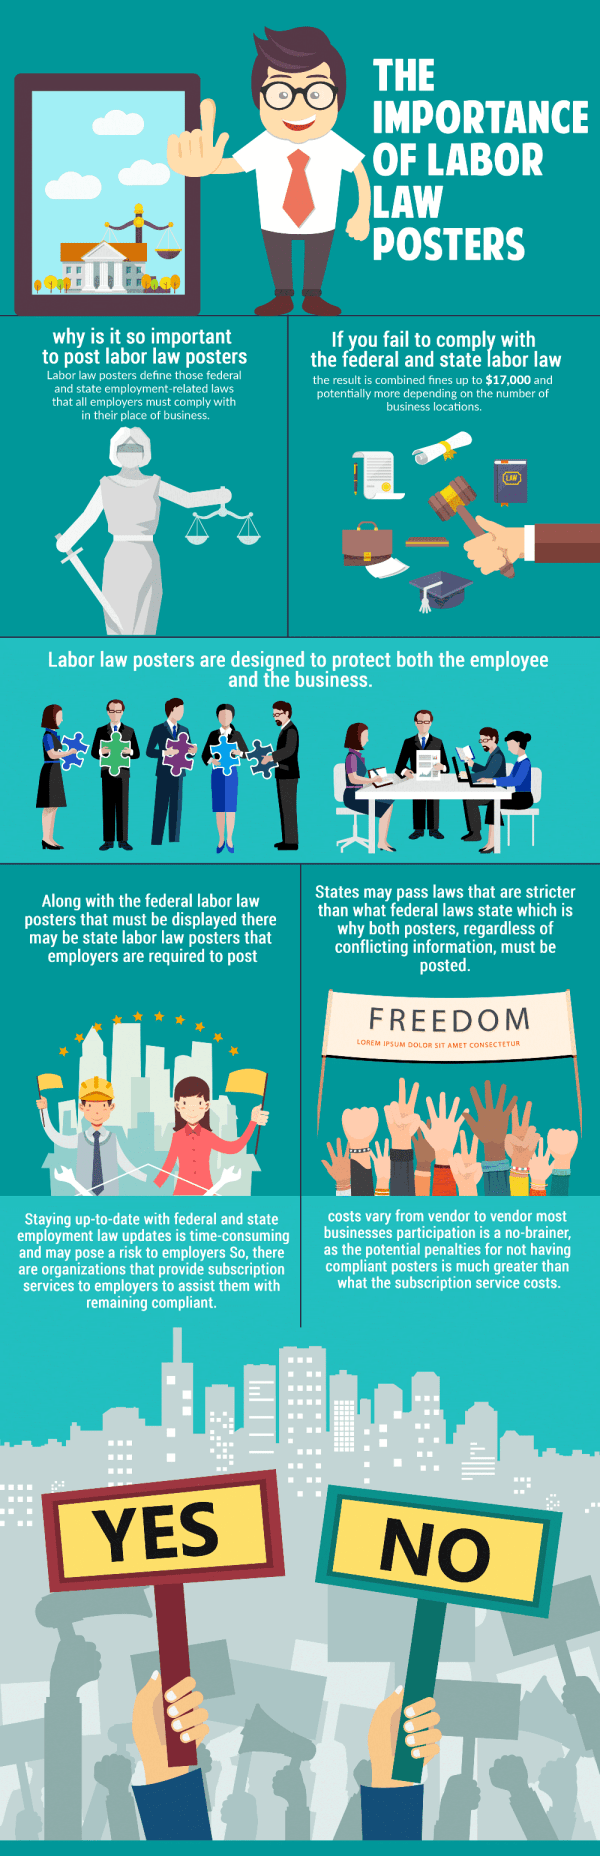 labour-law-posters-importance-infographic